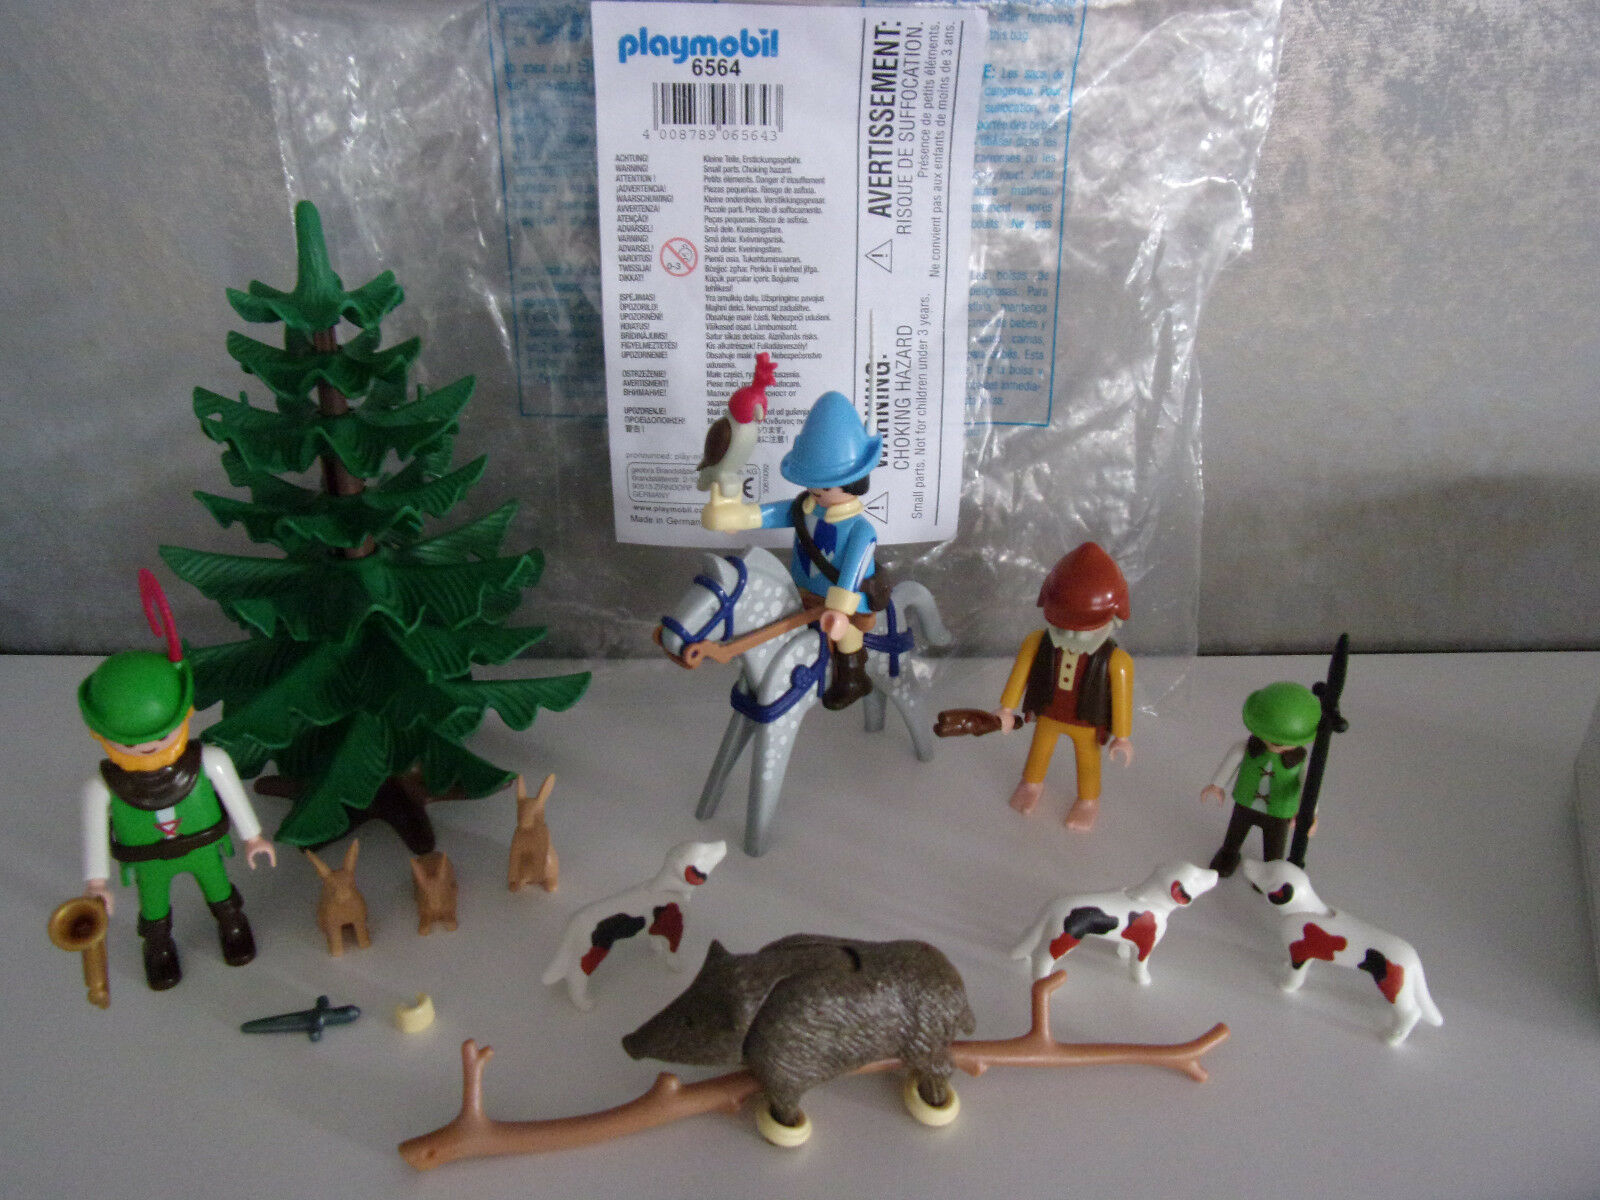 Playmobil Supplements & Accessories - 6564 Hunting Society - Nip